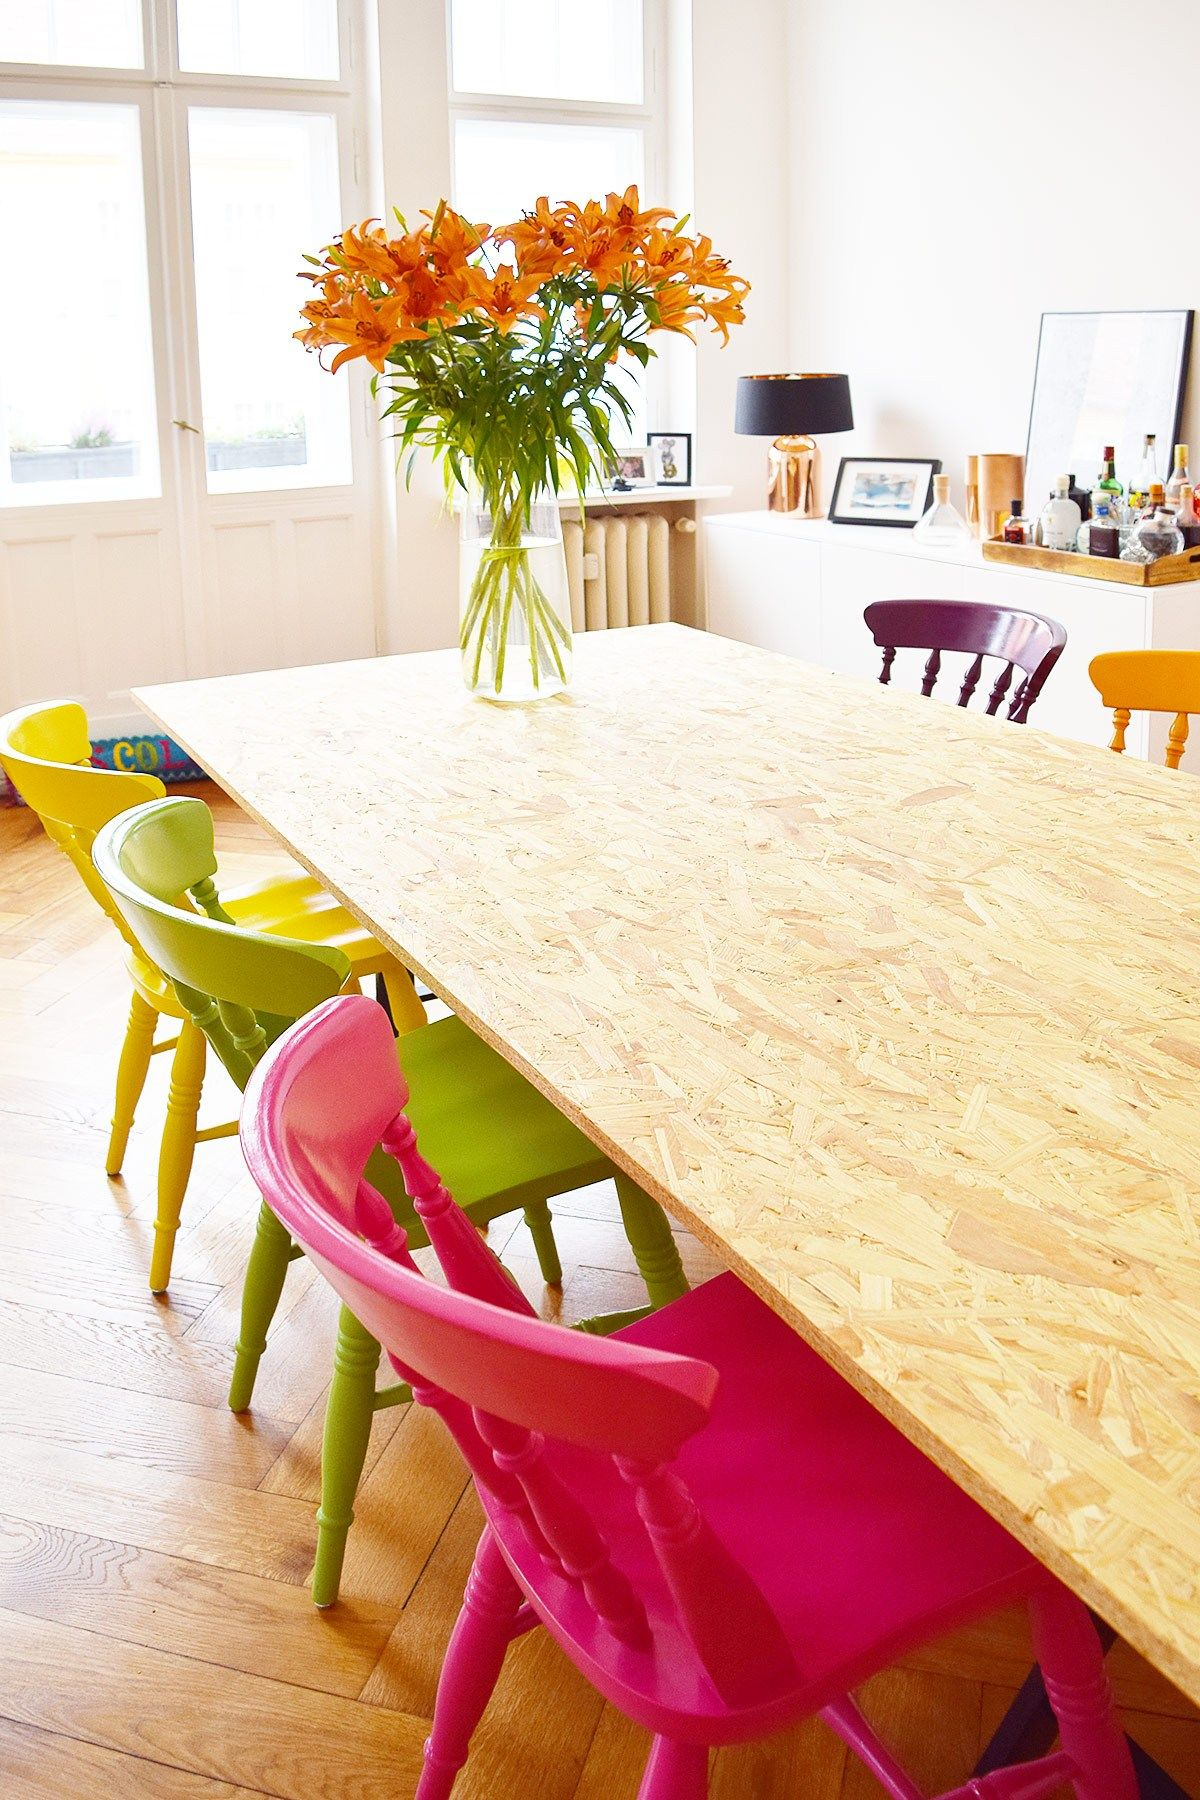 Diy Dining Table For Under 50 Avec Images Table Salle A